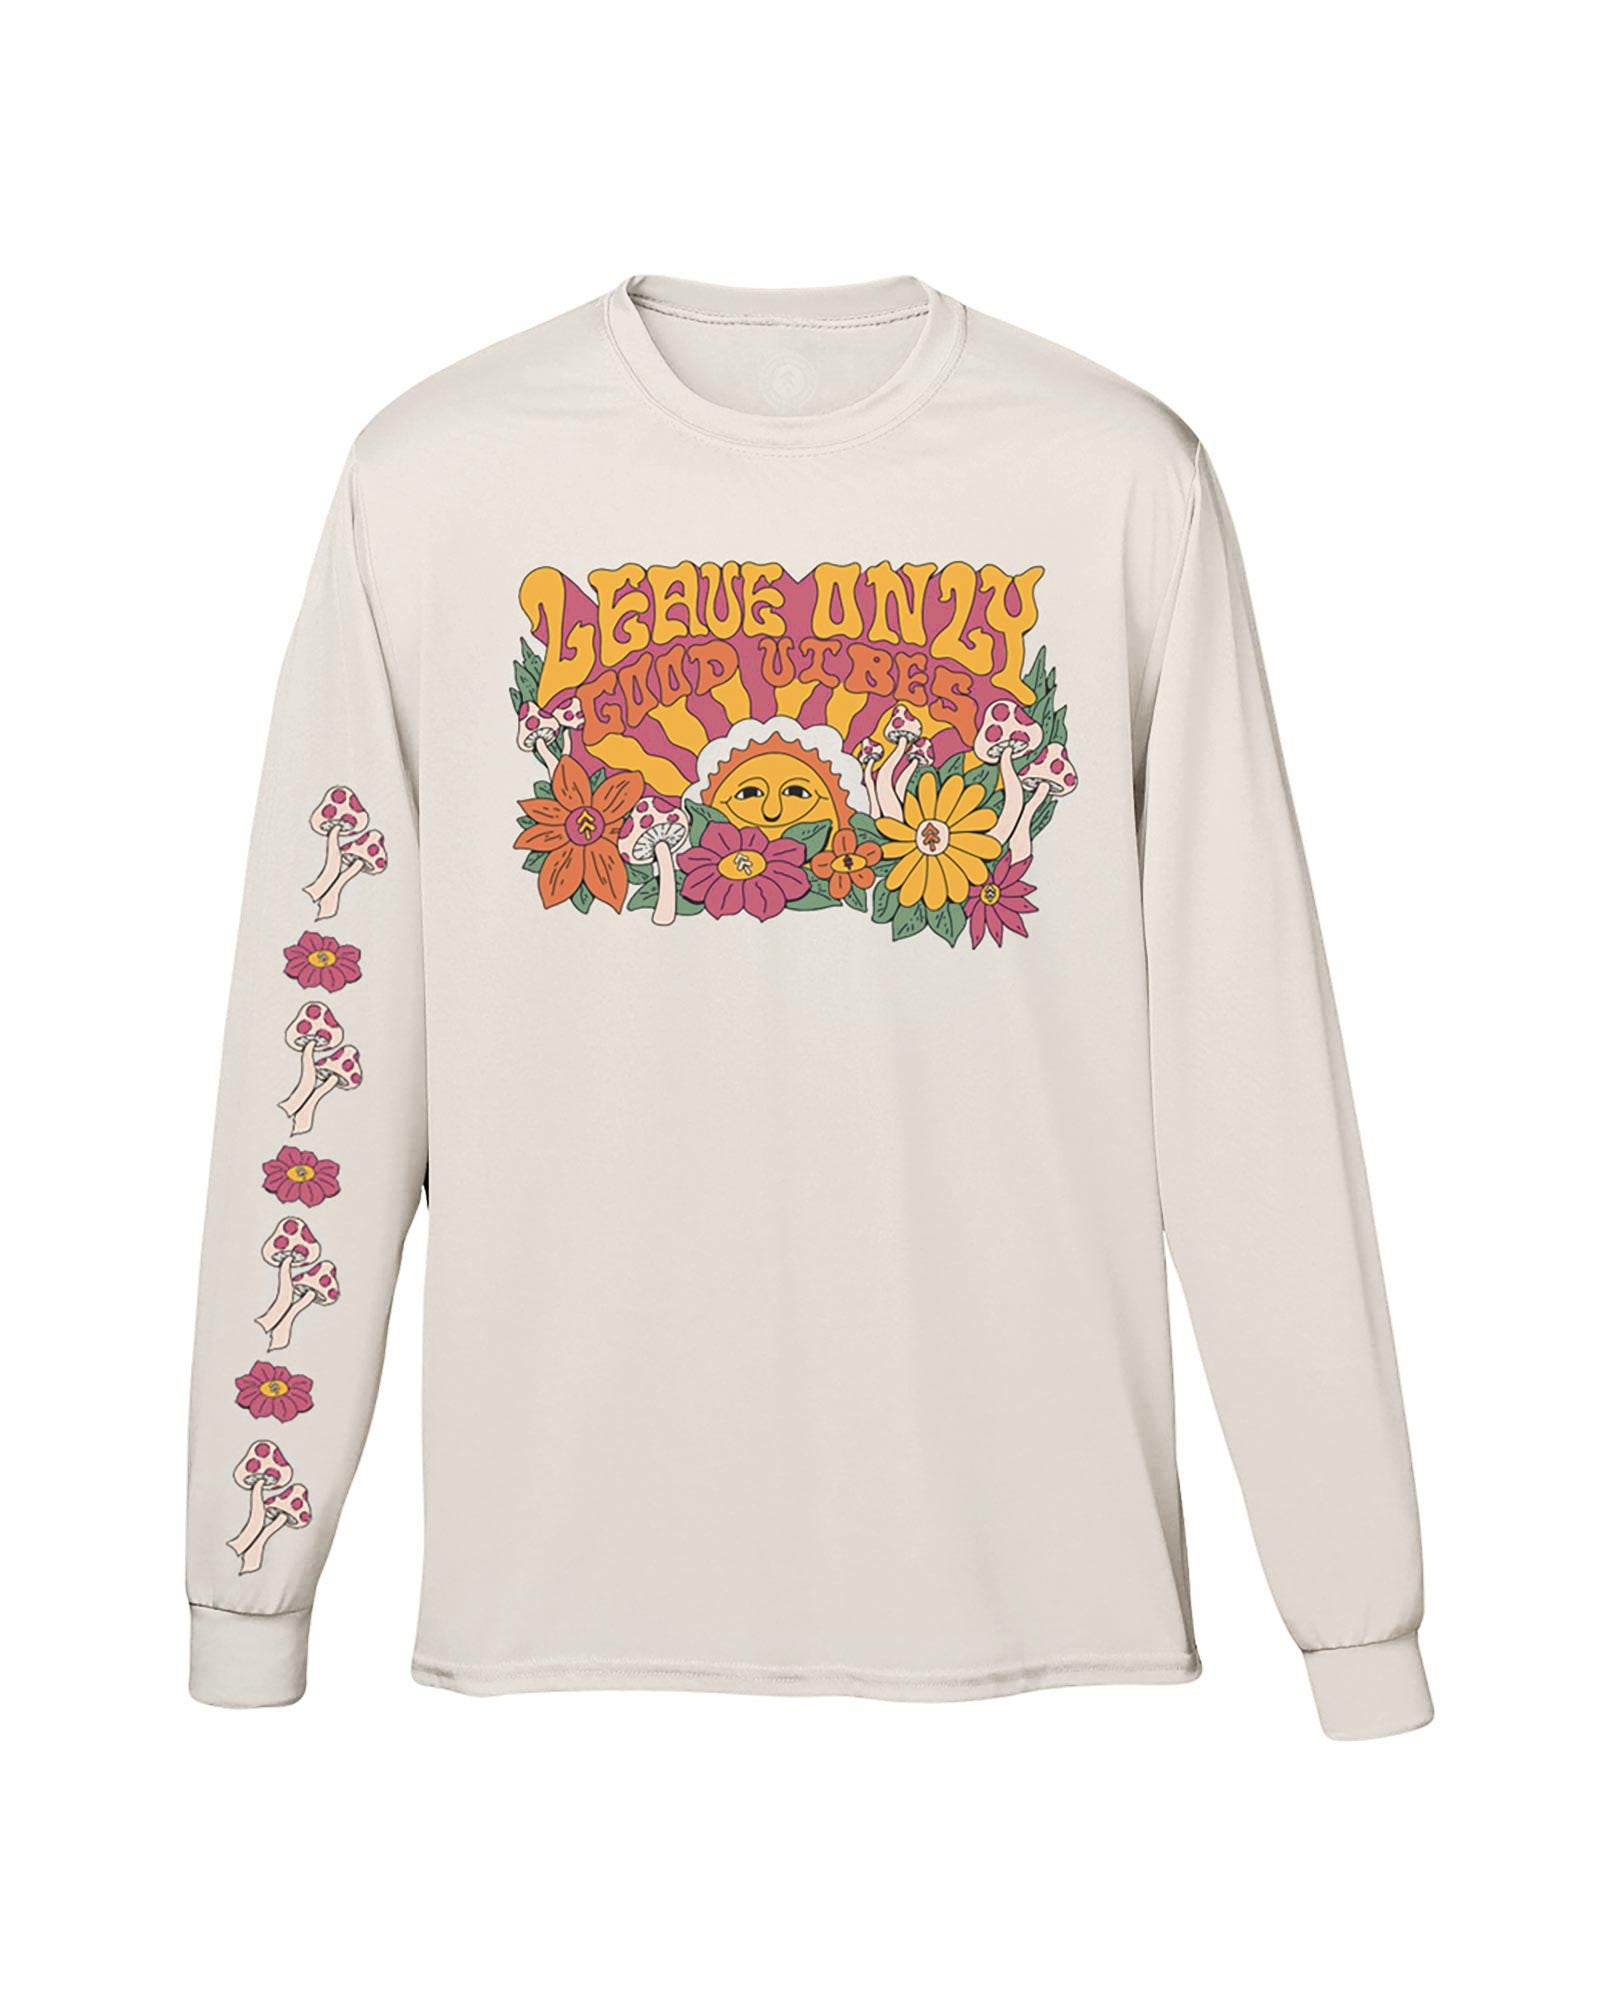 Leave Only Good Vibes Long Sleeve Tee | Parks Project | National Park Long Sleeve